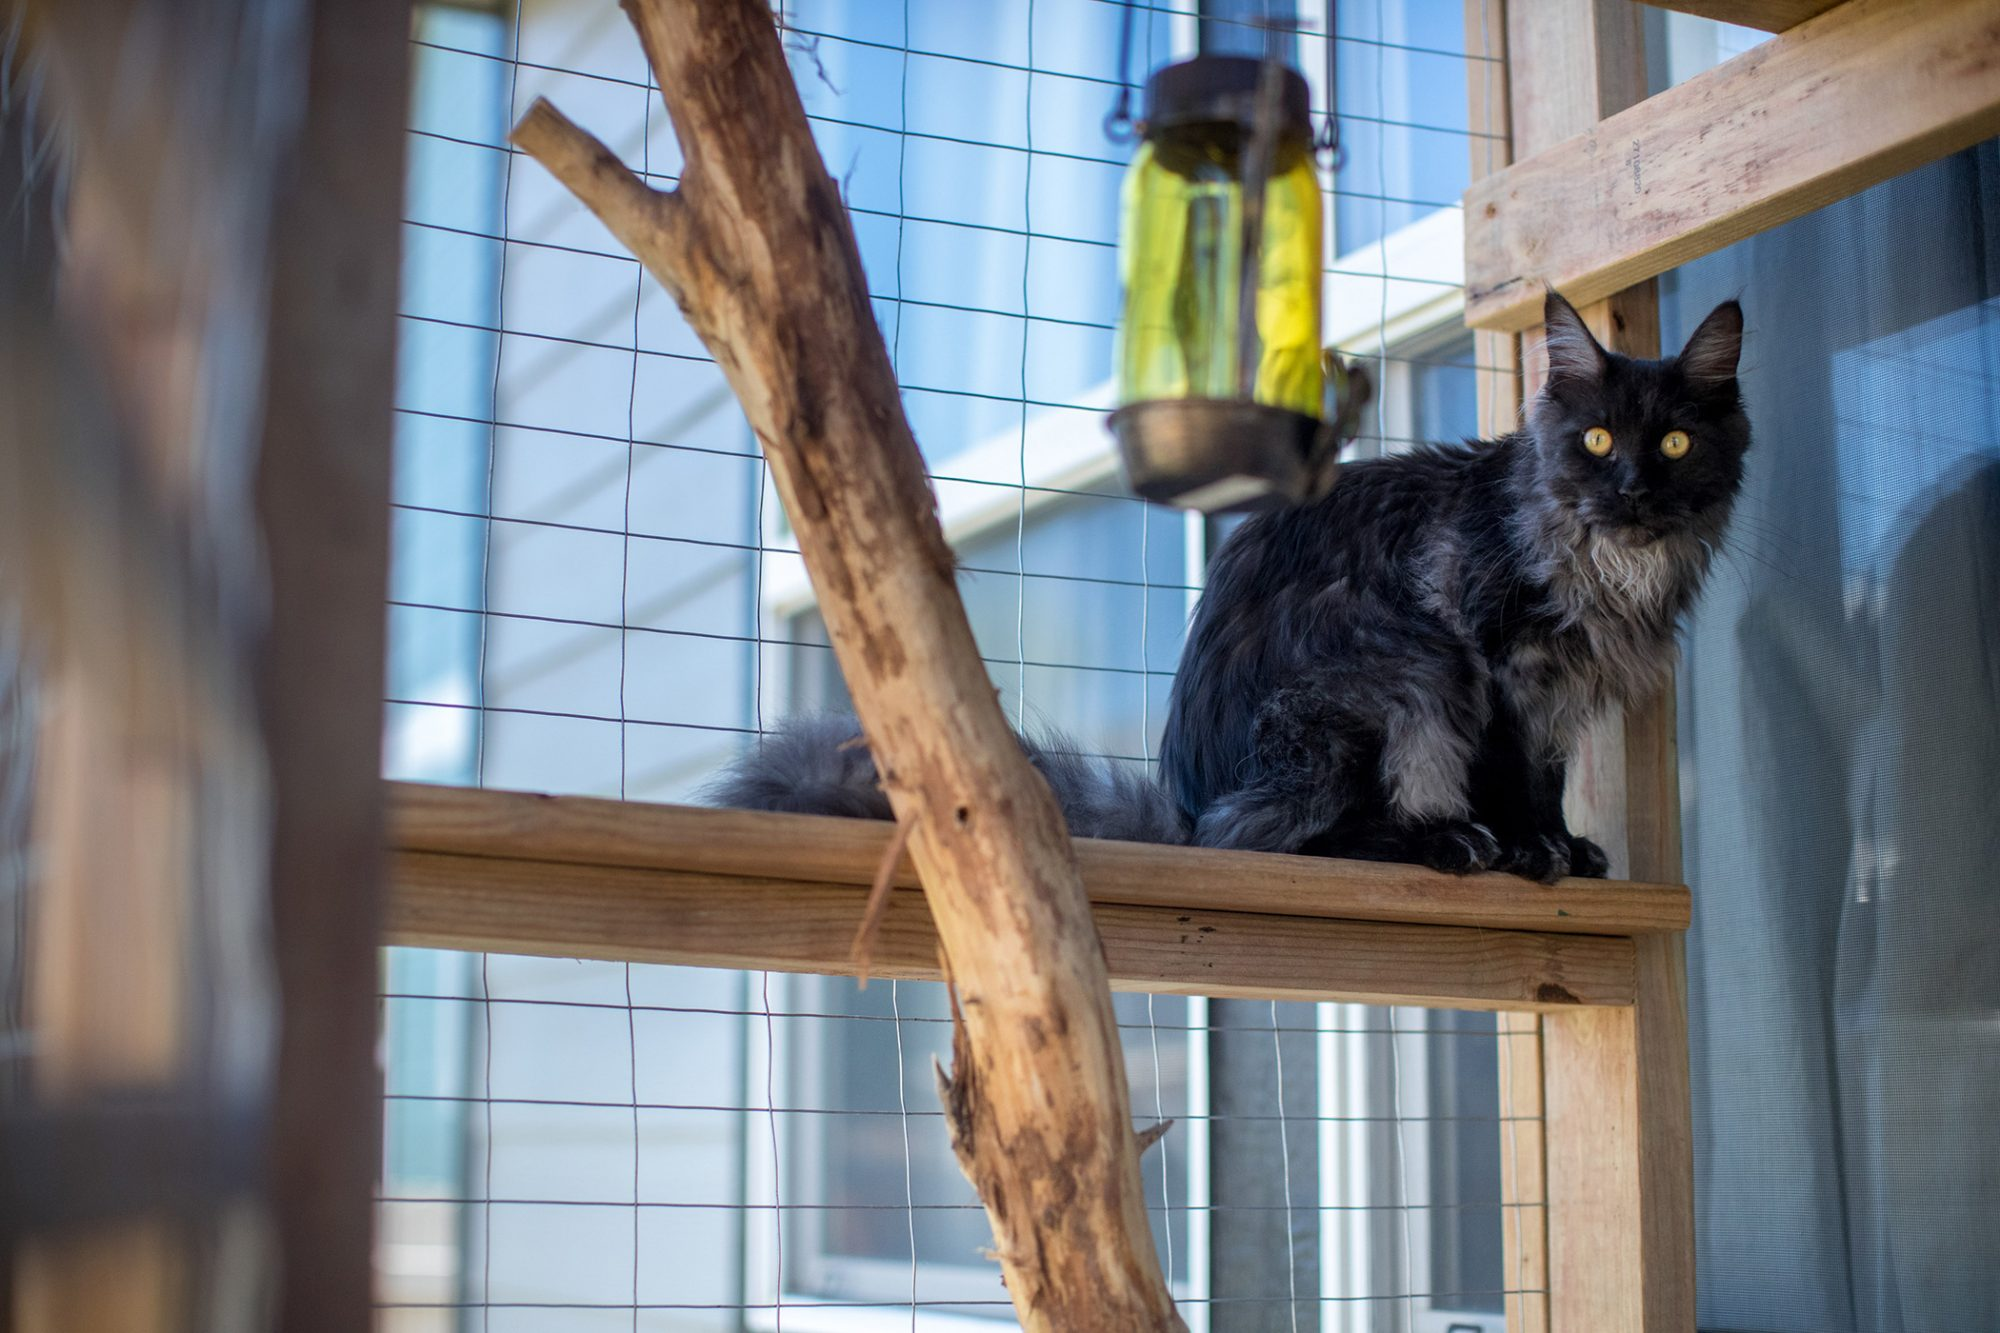 black long-haired cat sitting on a ledge in catio